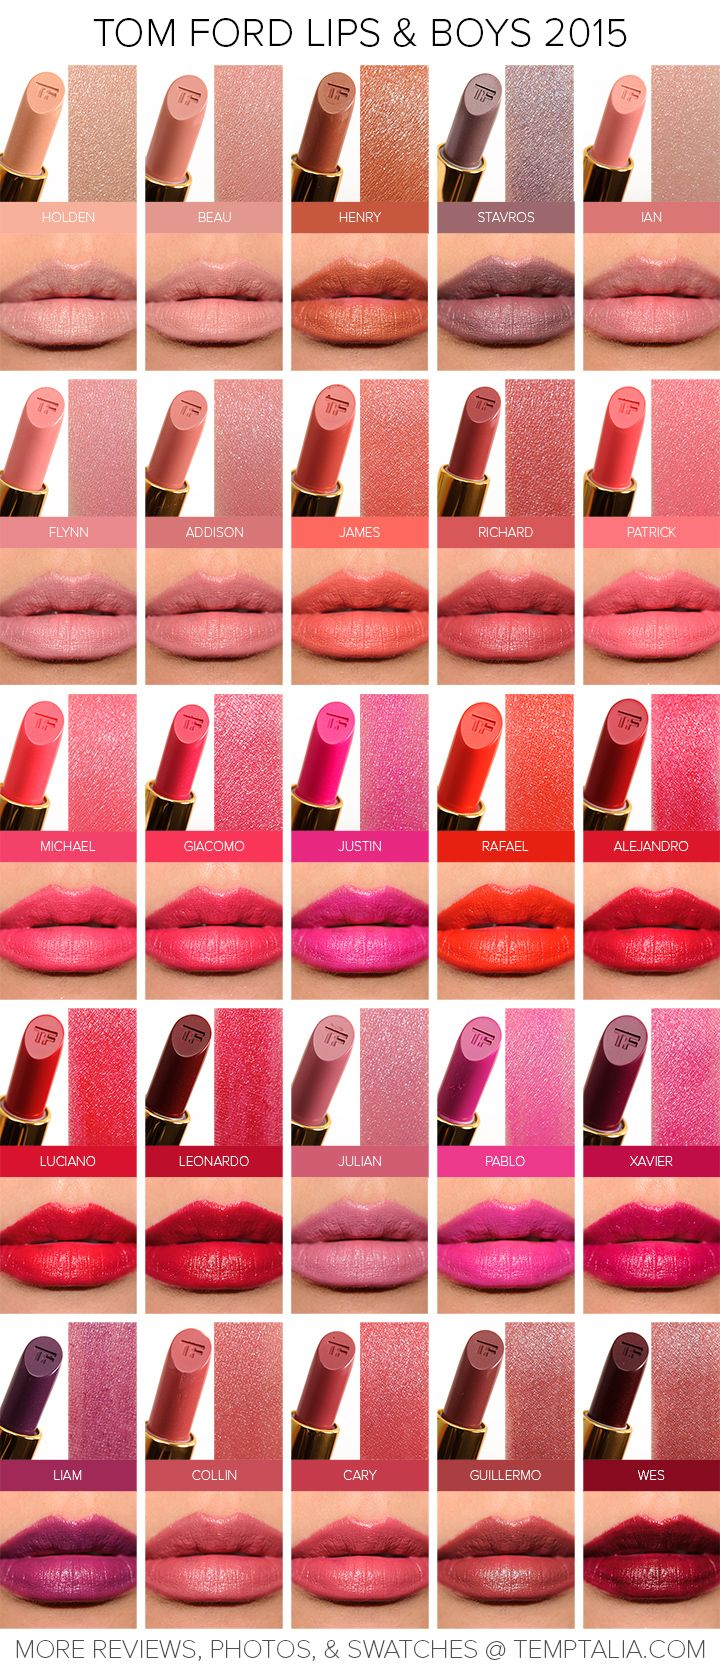 Sneak Peek: Tom Ford Lips & Boys 2015 Swatches & Photos (Returning Shades) | Temptalia | Bloglovin'